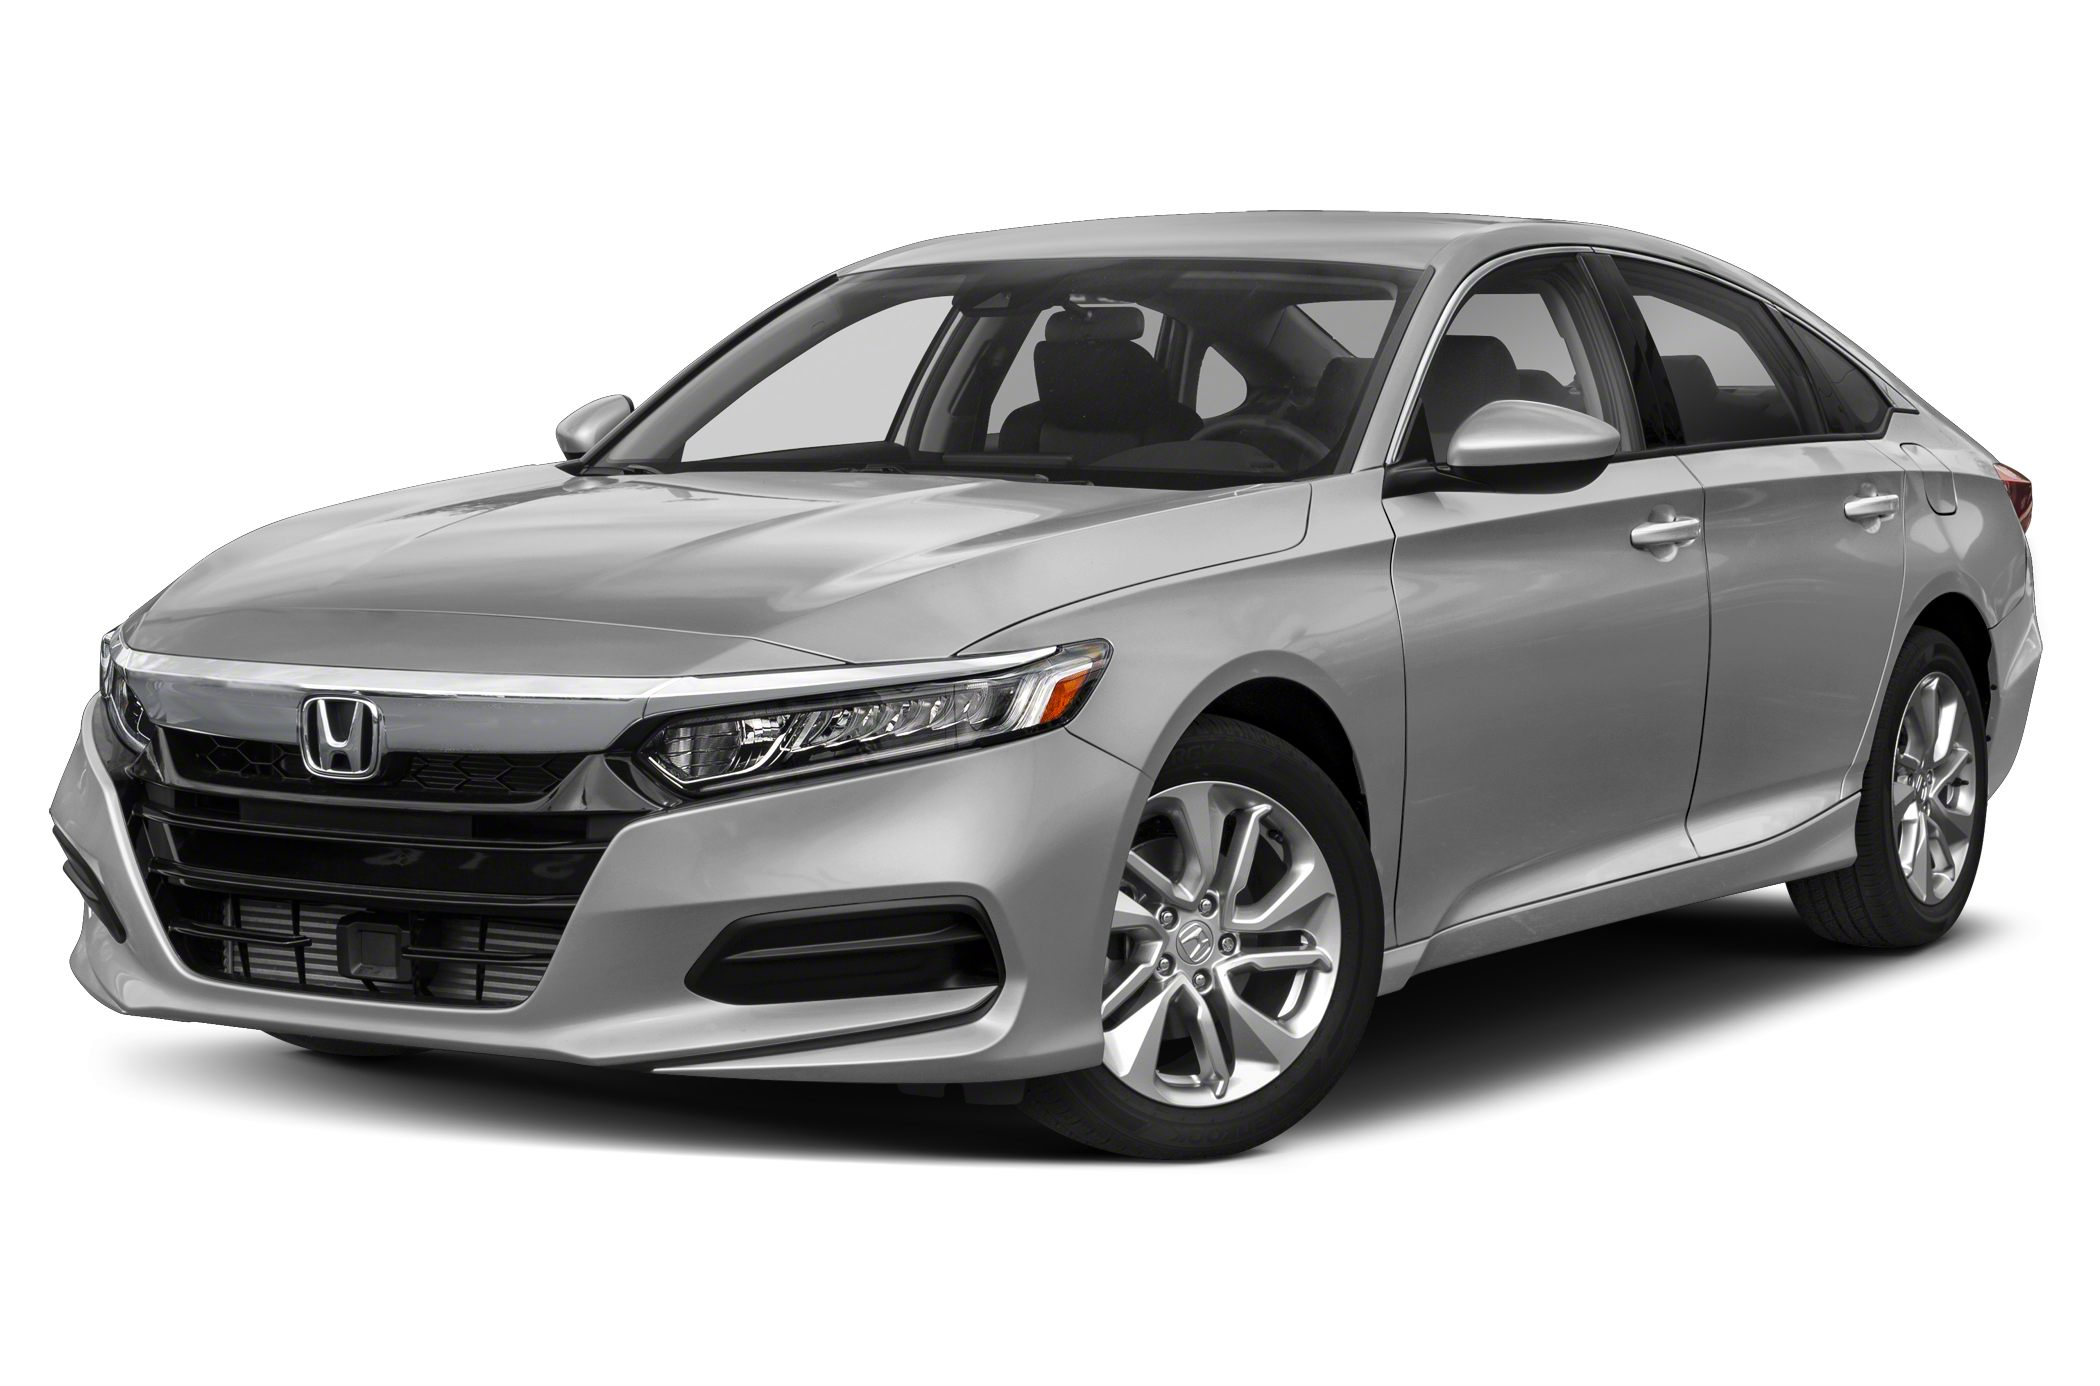 2020 Honda Accord Sedan Price and Release date